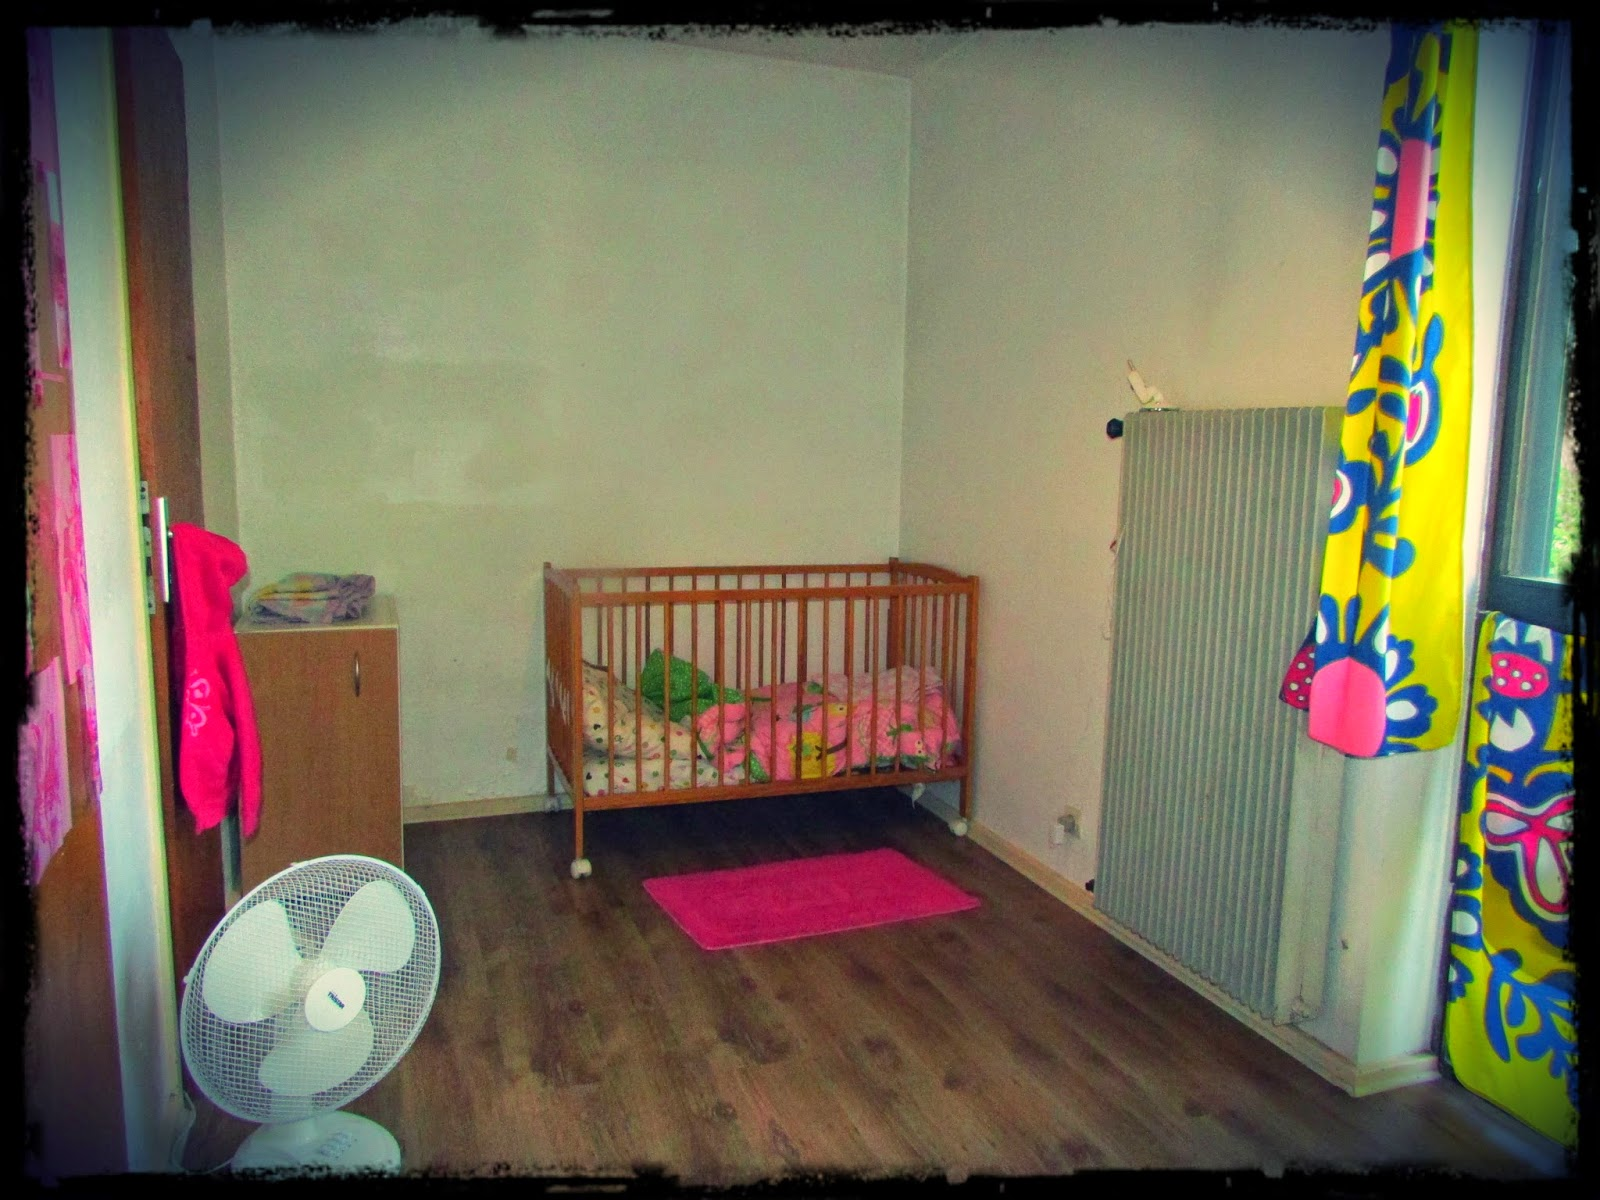 Jaelyn's room. Although, it's soon to be the new baby's room